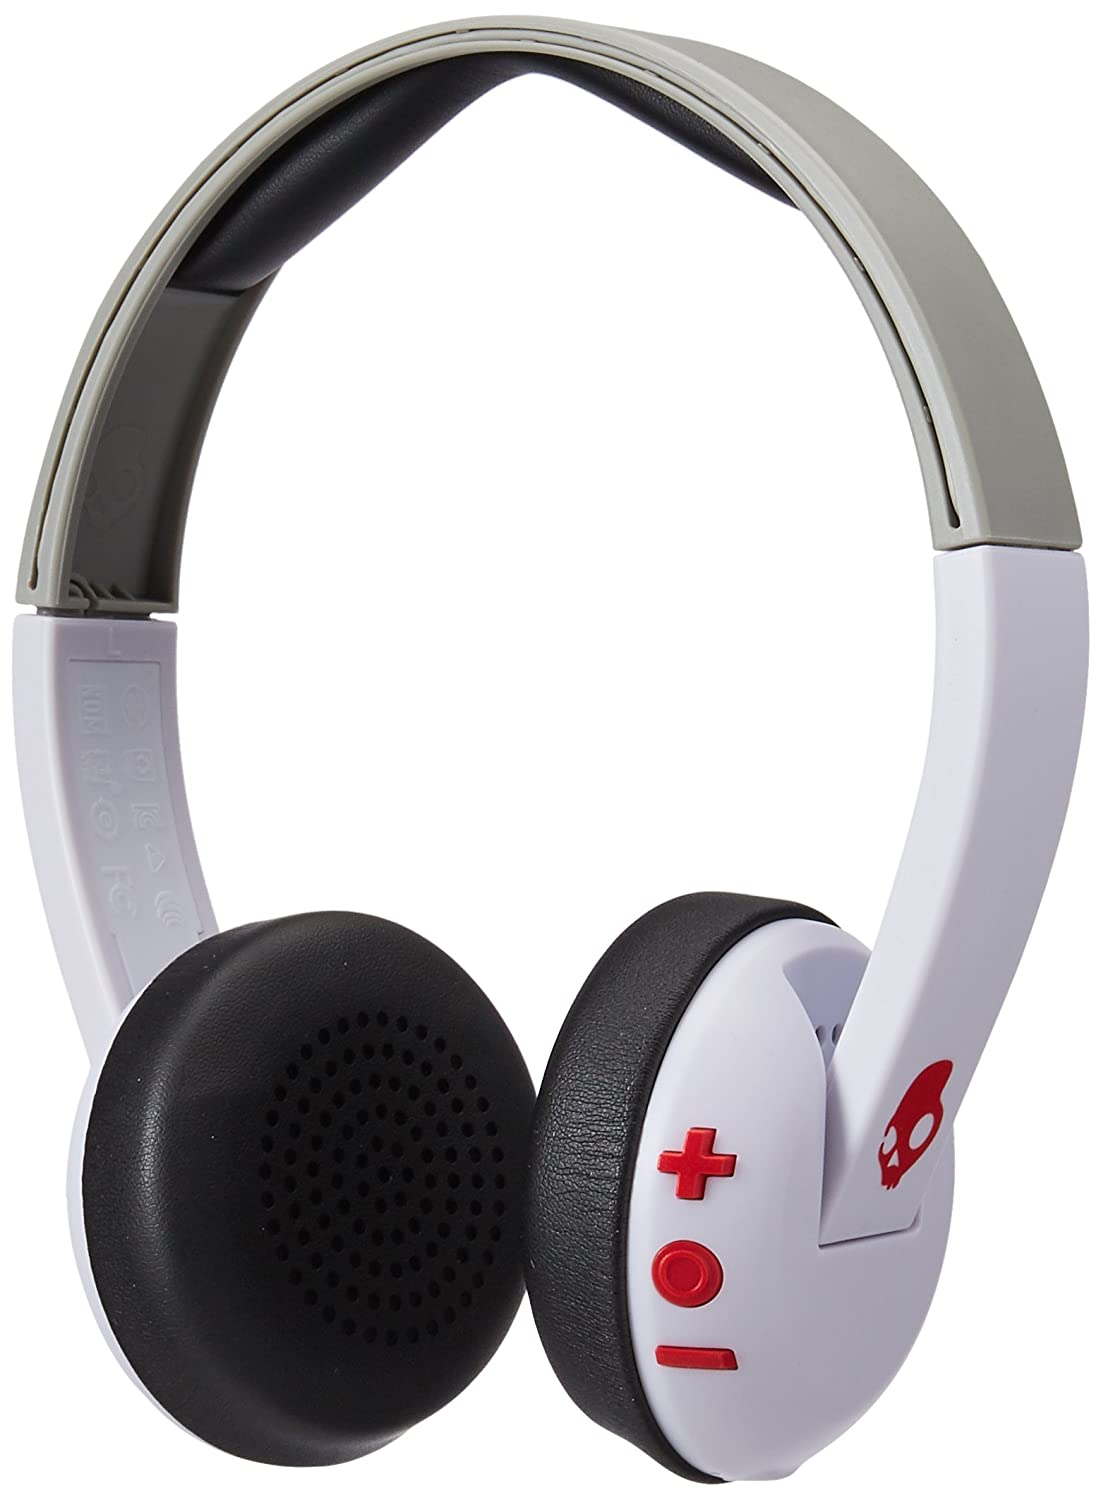 Skullcandy Uproar Bluetooth Wireless On-Ear Headphones with Built-In Microphone and Remote, 10-Hour Rechargeable Battery, Soft Synthetic Leather Ear Pillows for Comfort, White/Gray/Red